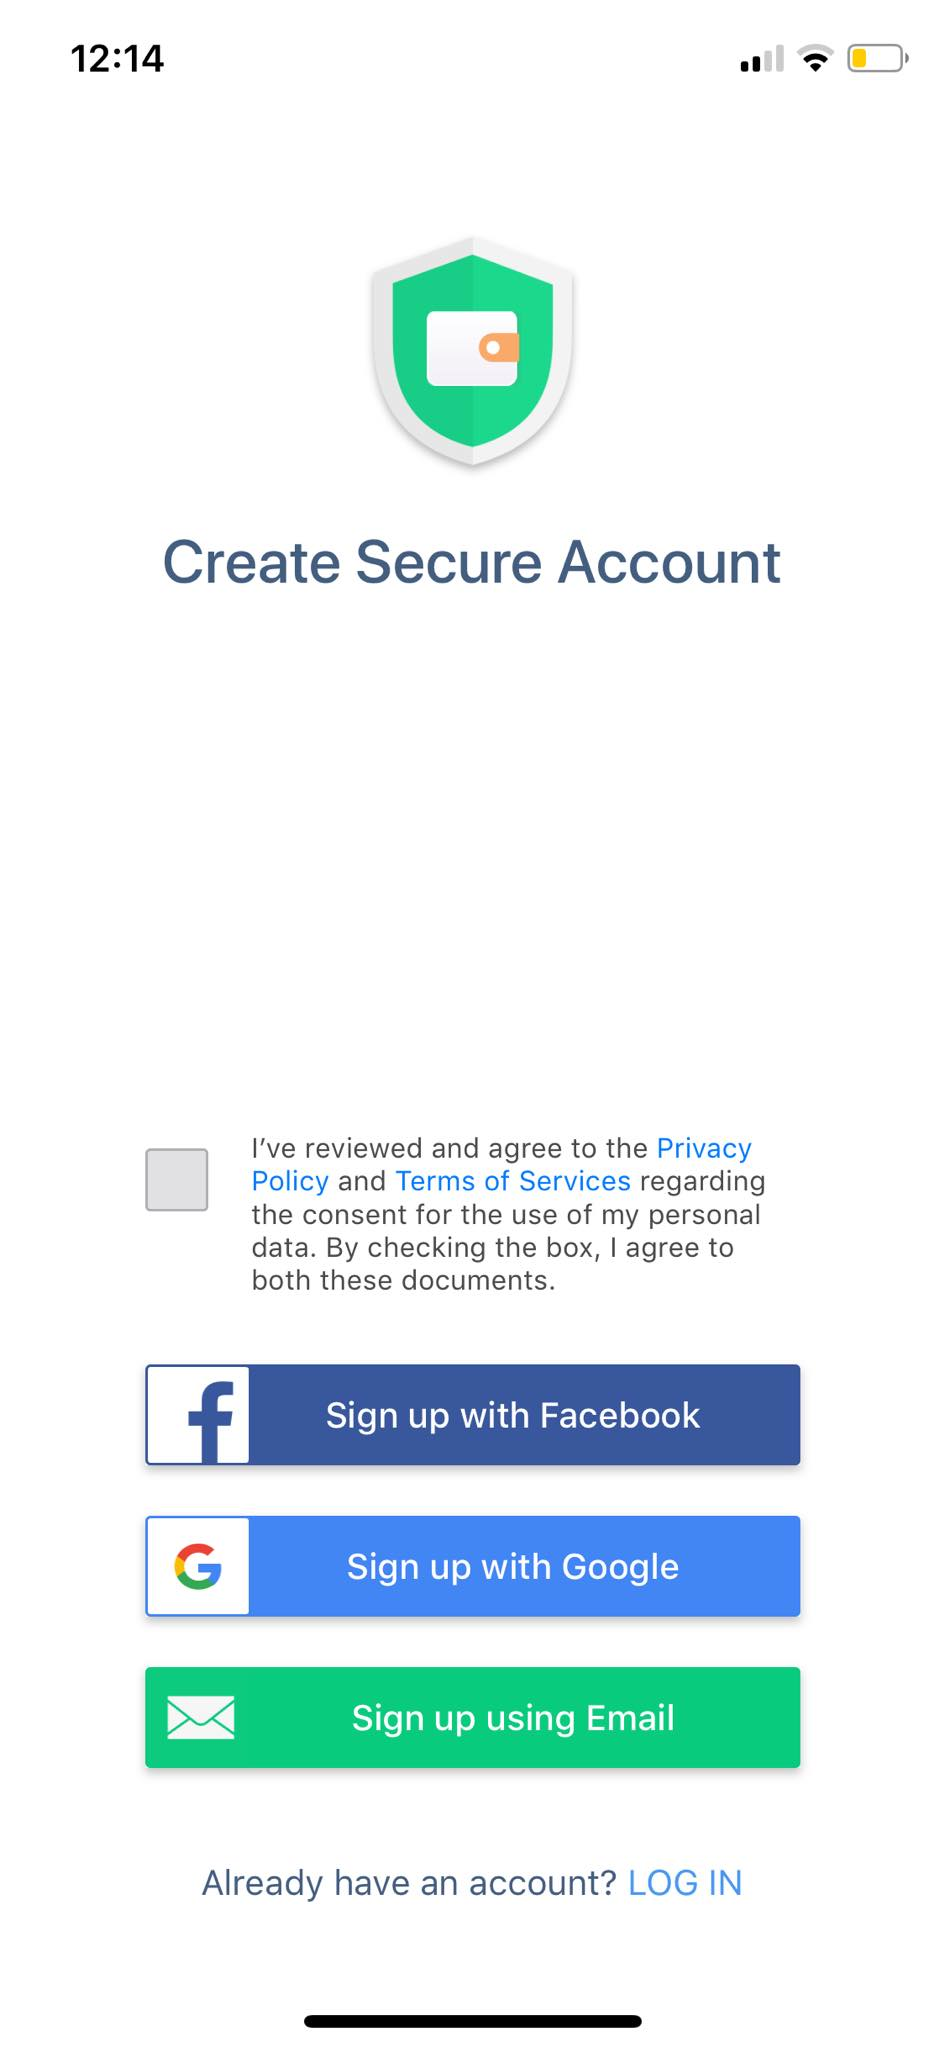 Create Secure Account on iOS by Wallet